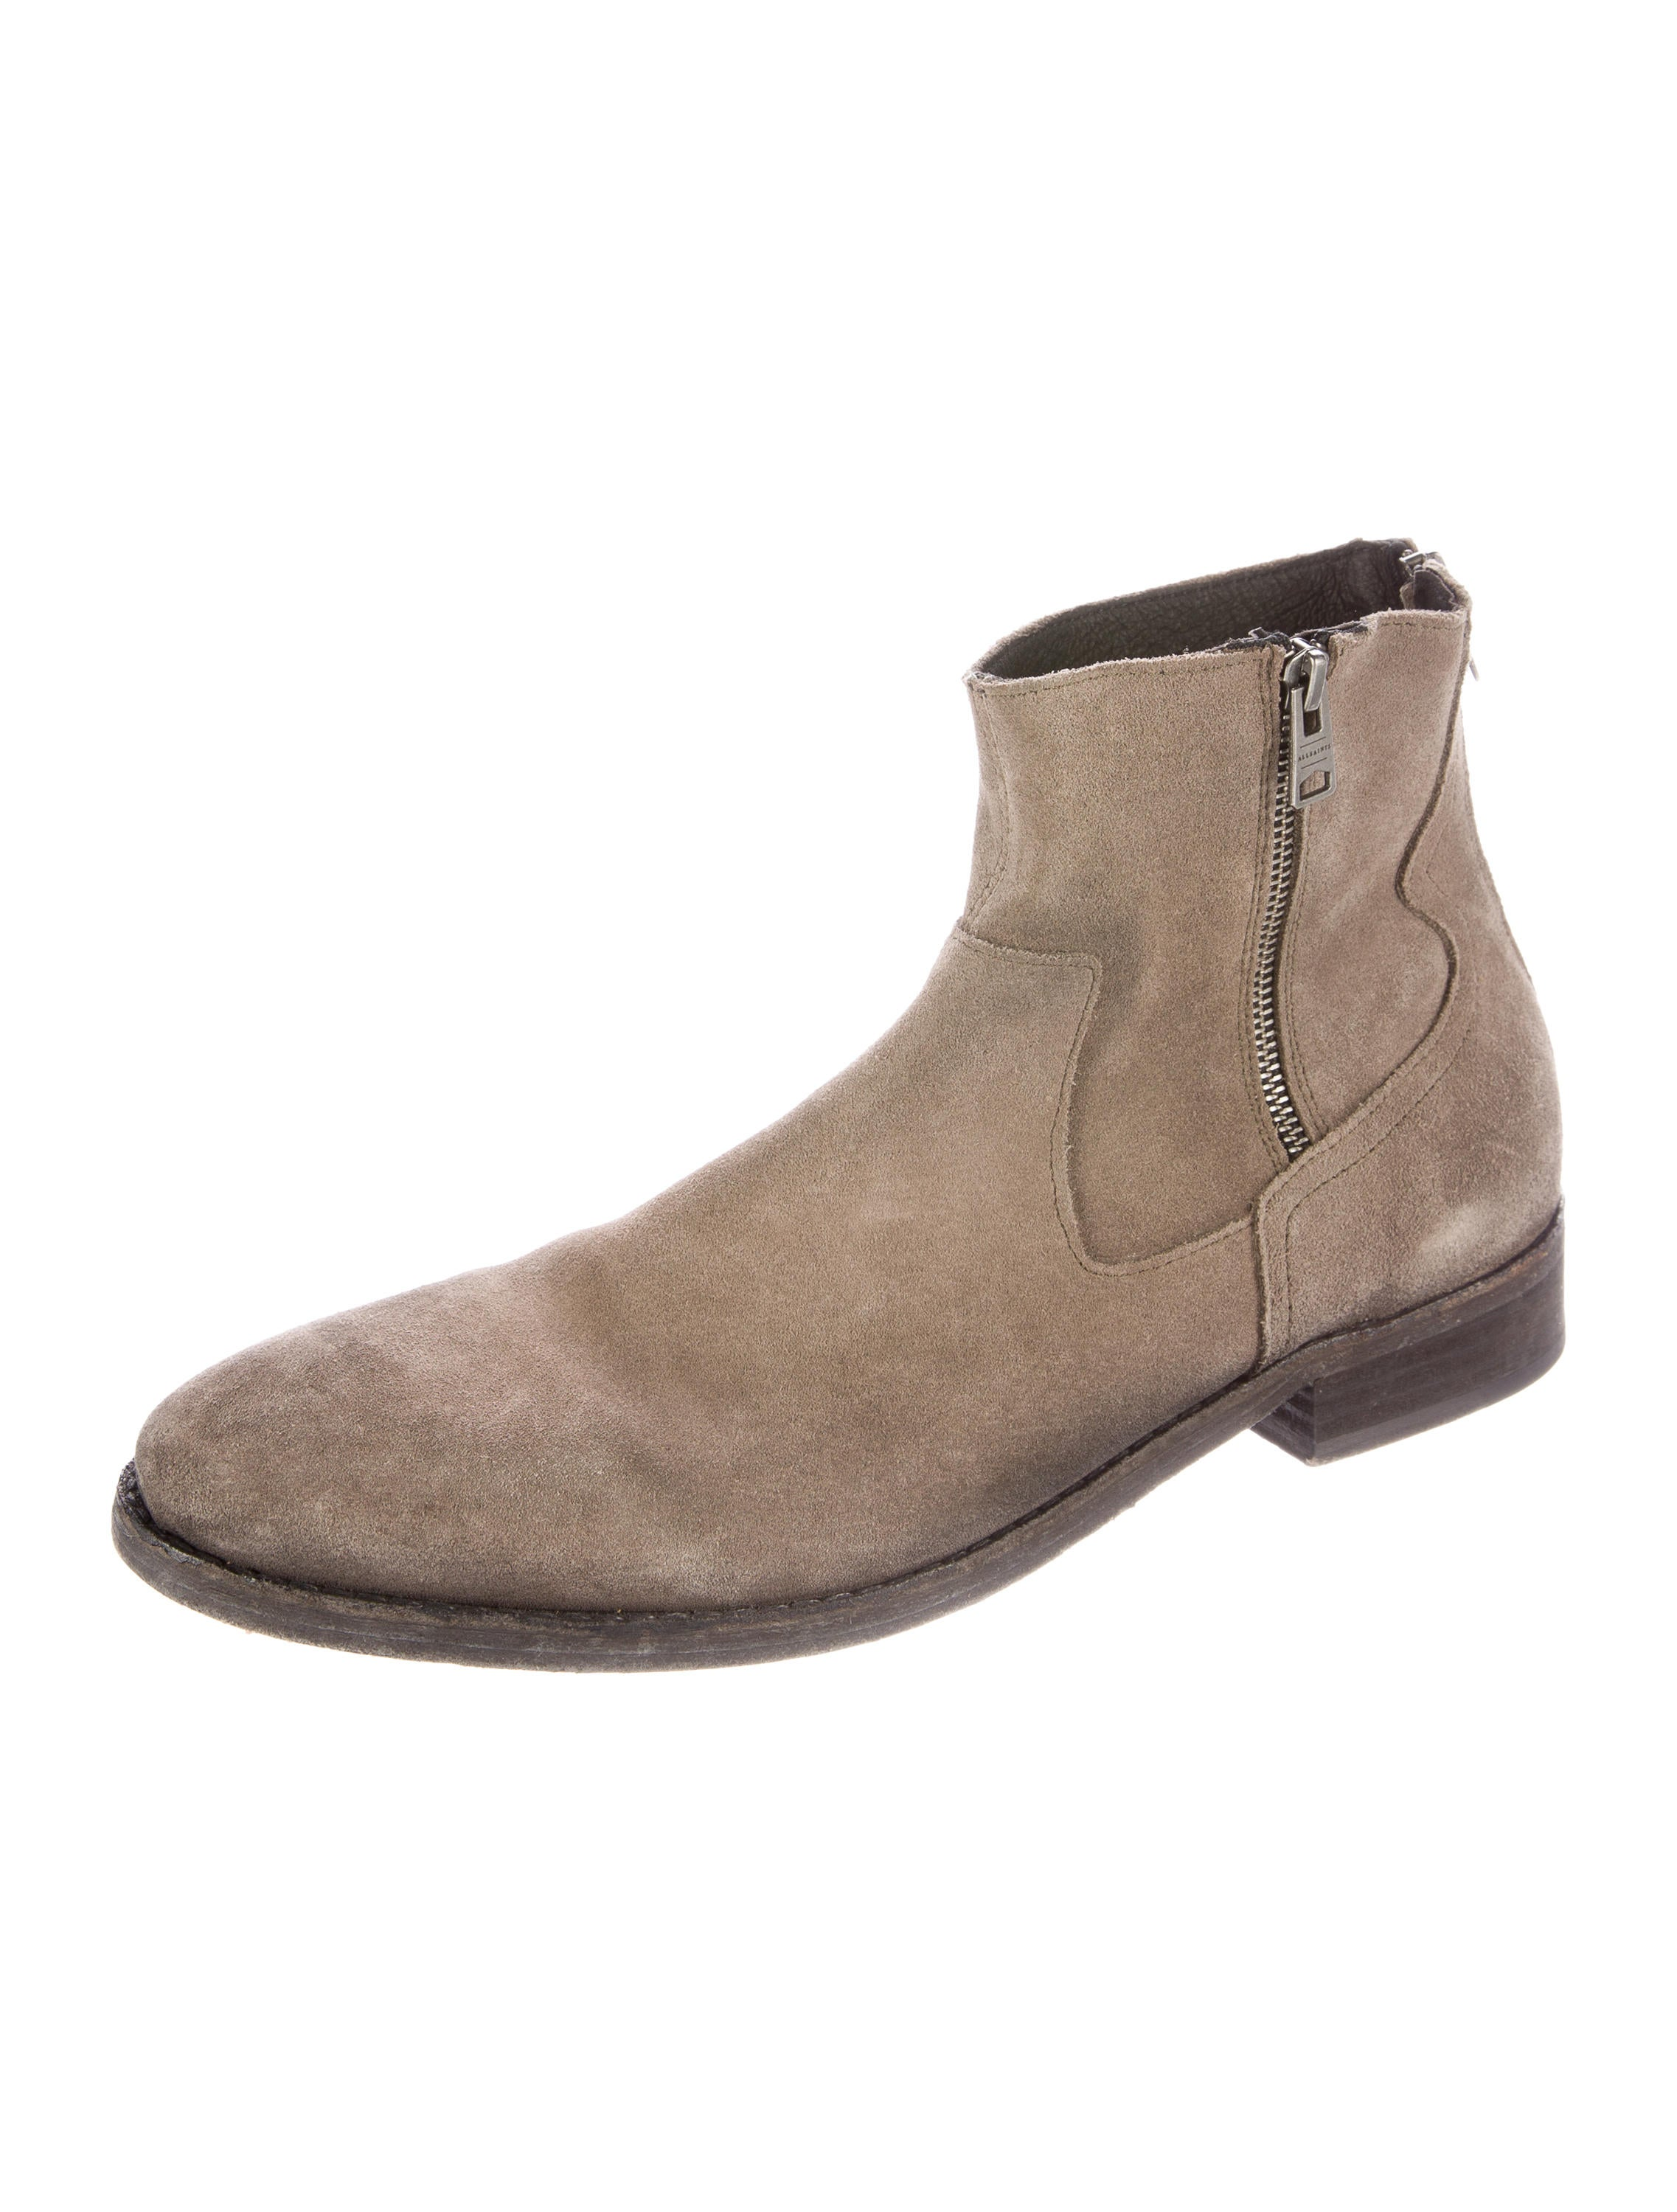 allsaints suede western ankle boots shoes waq20172